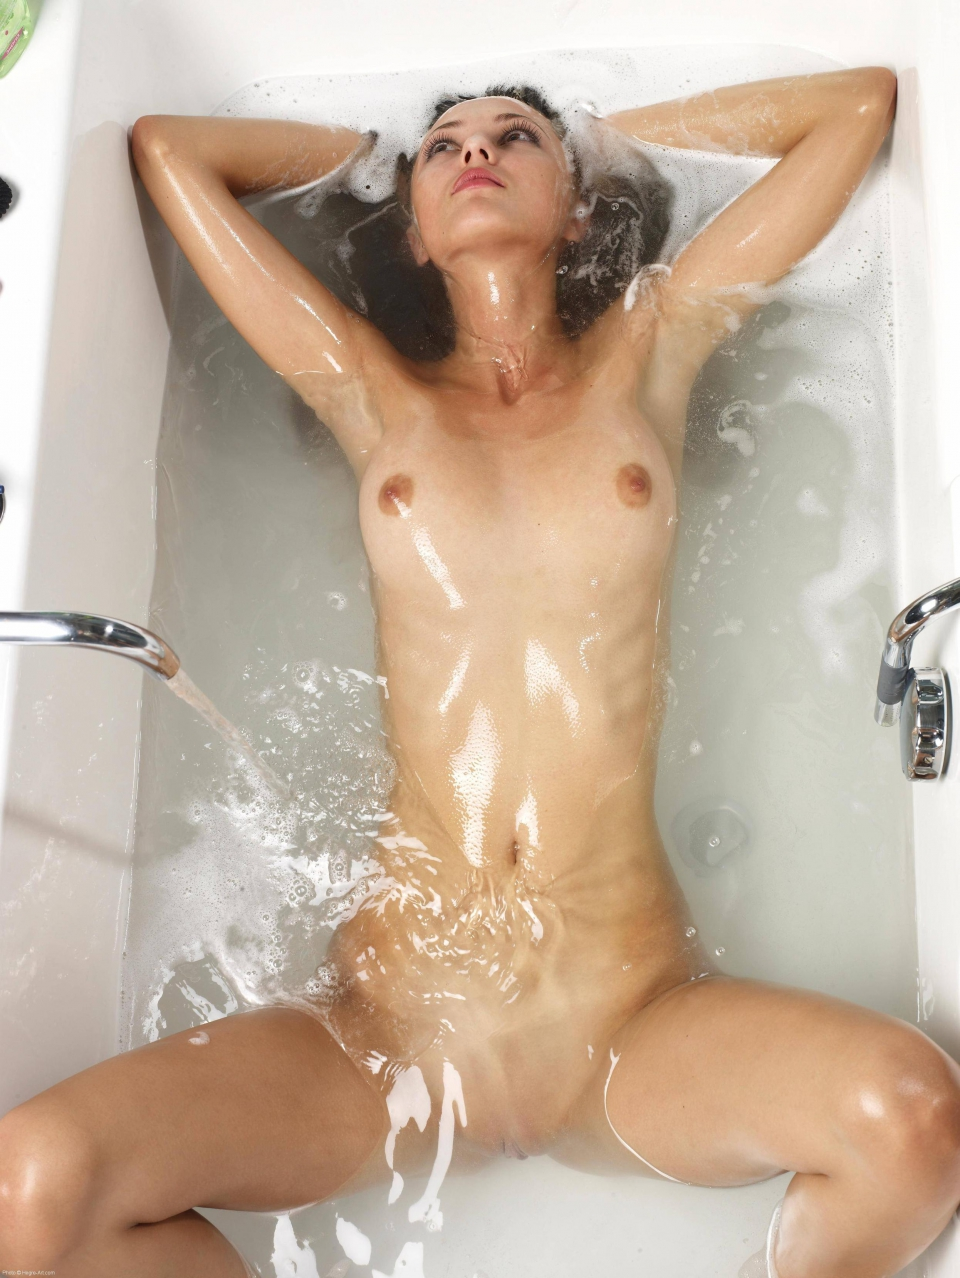 Apologise, but hot naked girls bathing think